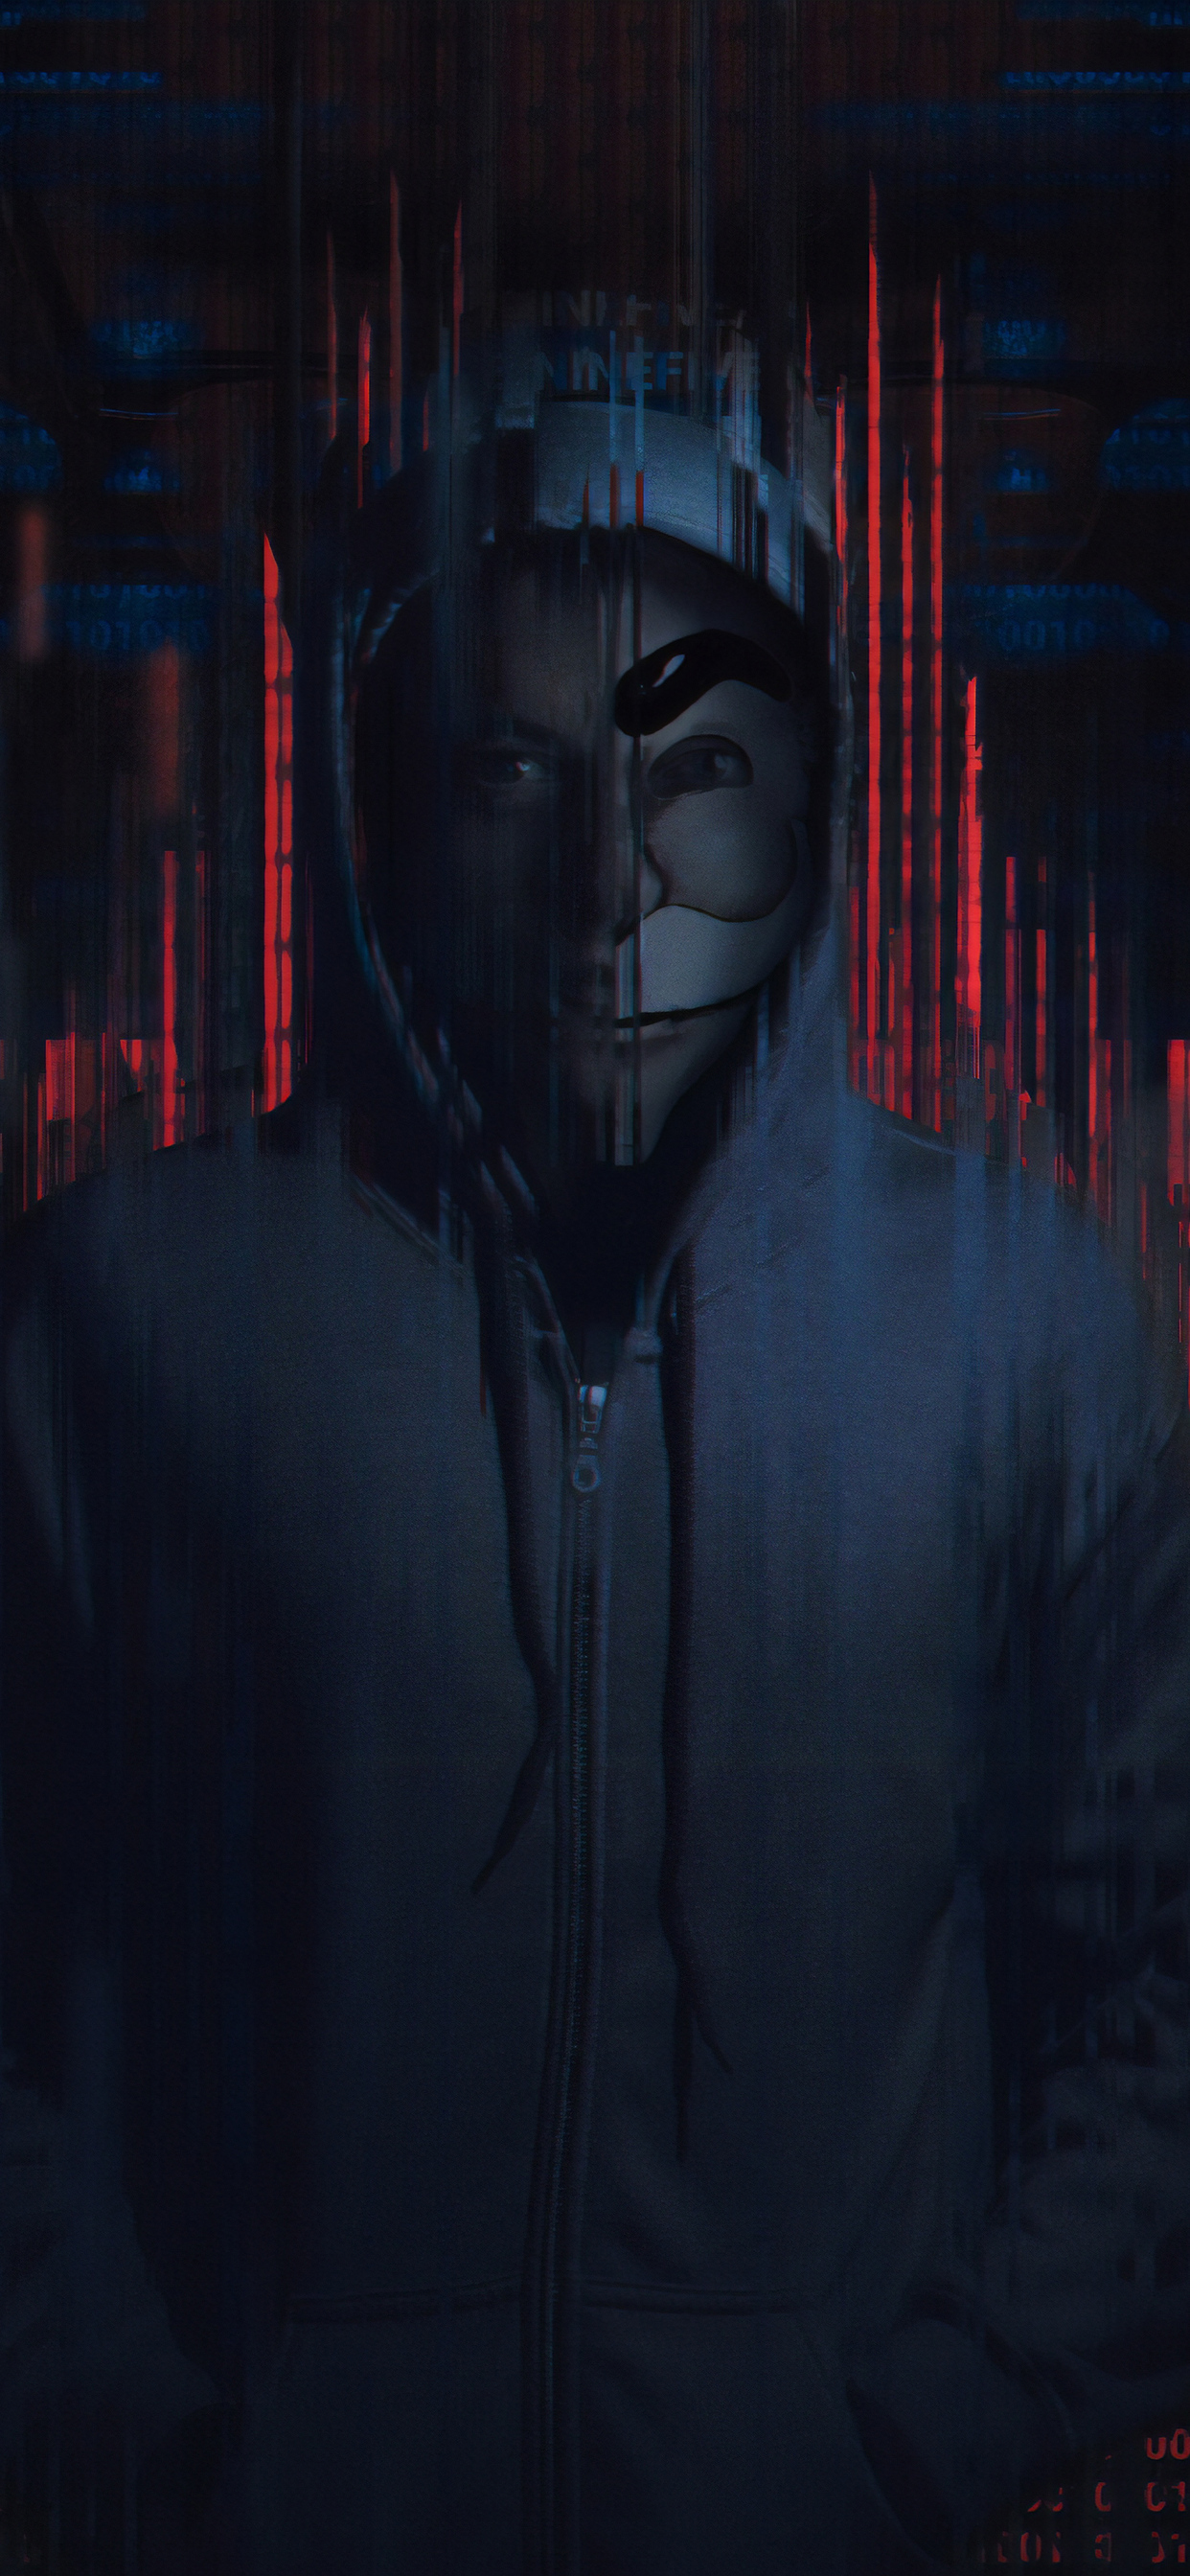 mr-robot-tv-series-4k-q4.jpg